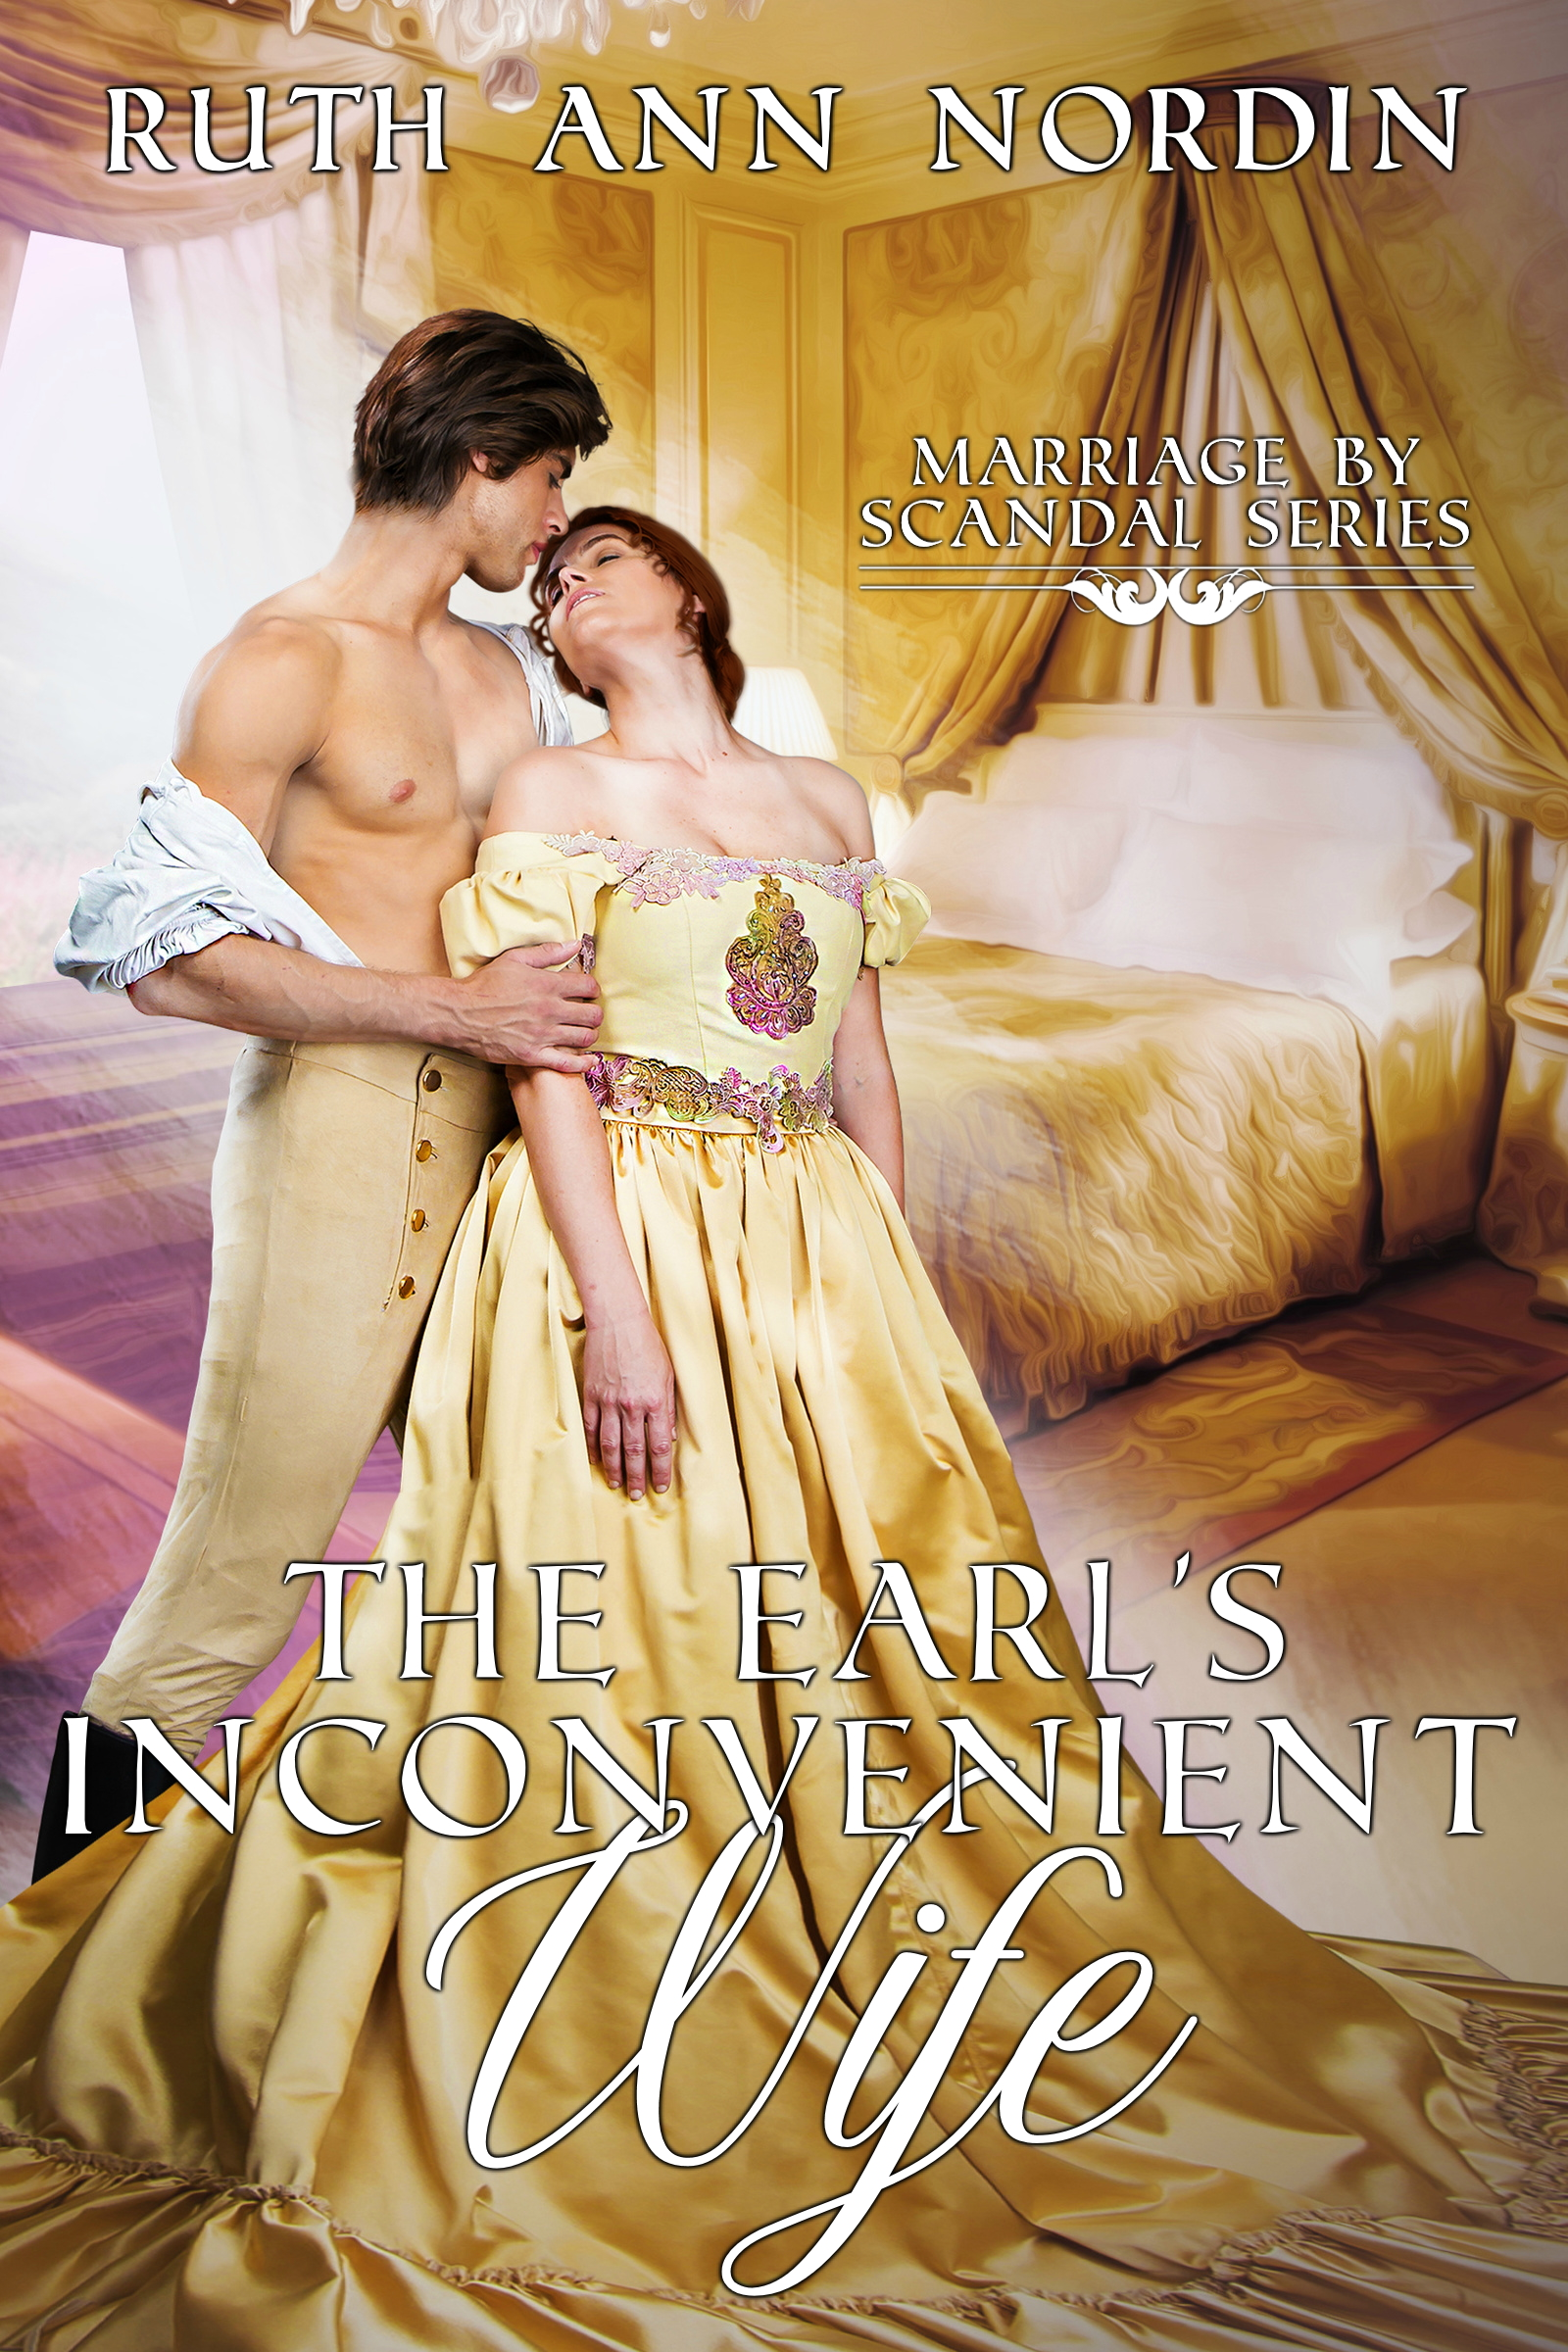 The Earl's Inconvenient Wife (sst-ccxxiv)